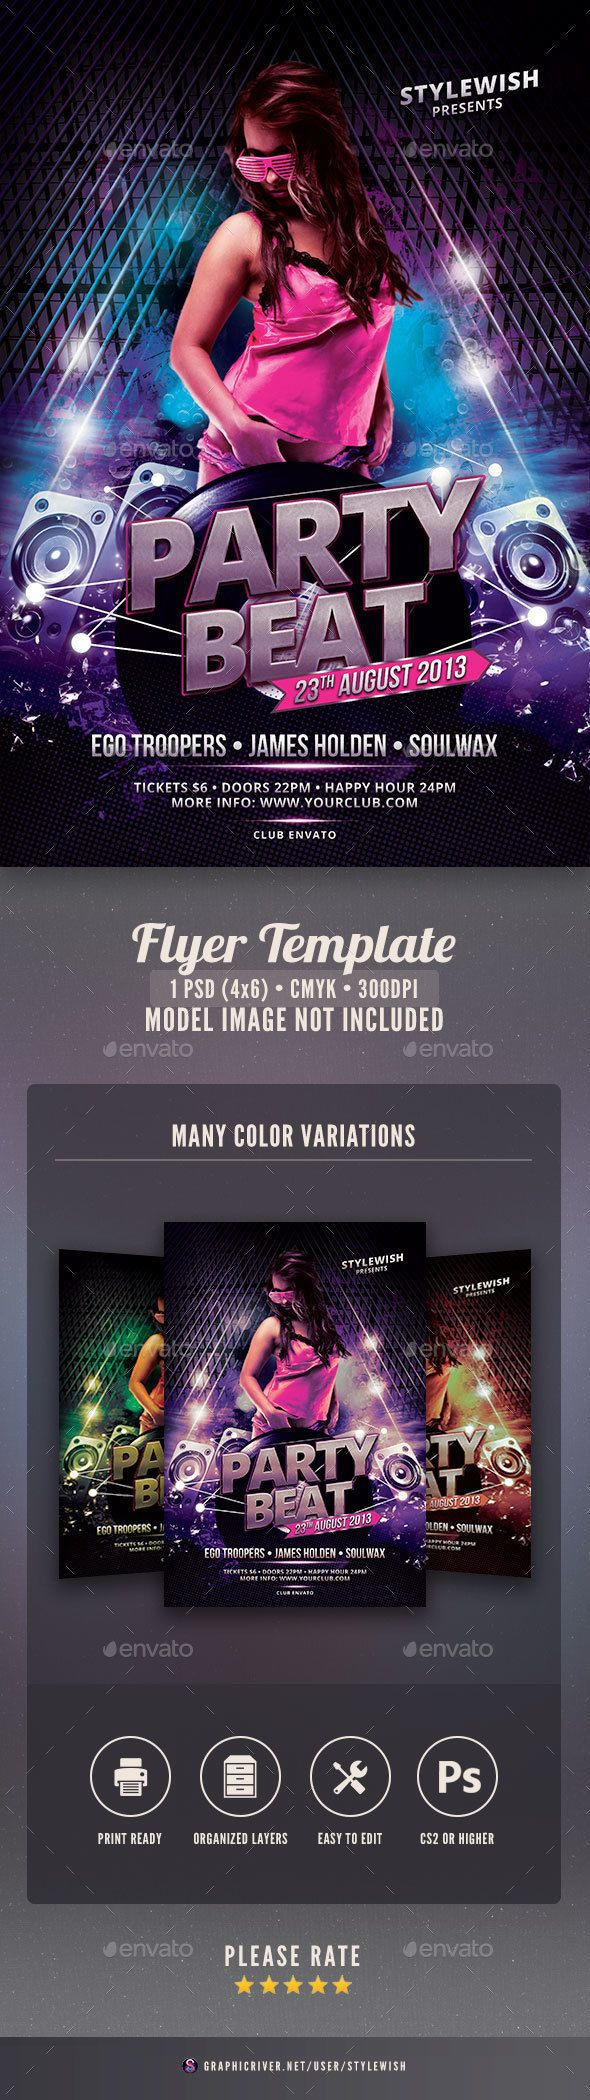 Party Beat Flyer | Flyer template, Template and Party flyer